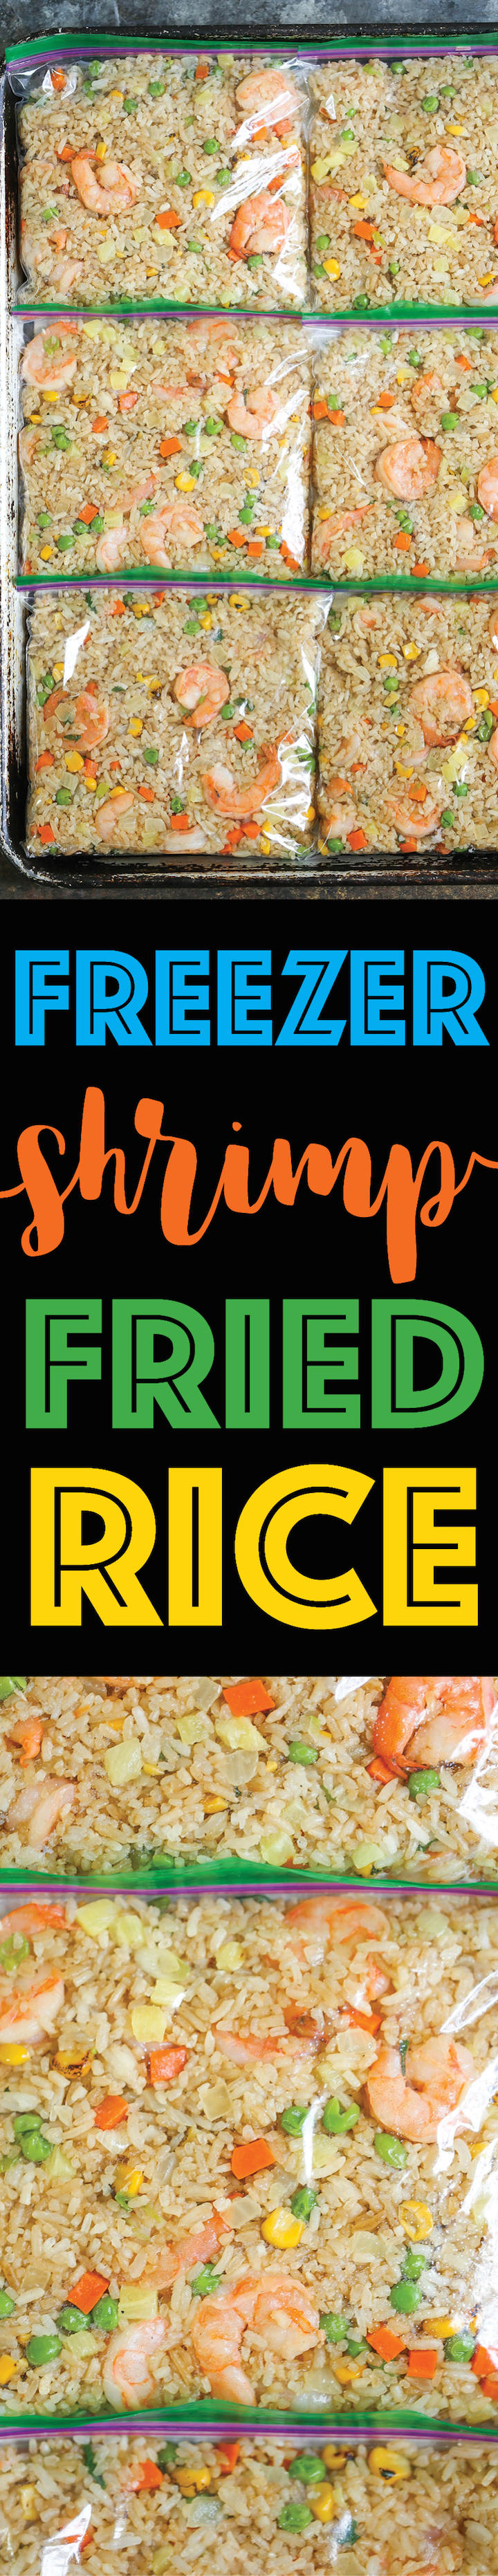 Freezer Shrimp Fried Rice - Yes, you can totally freeze fried rice!!!! Simply freeze, thaw and throw into the skillet for 5-10 minutes. That's it!!!